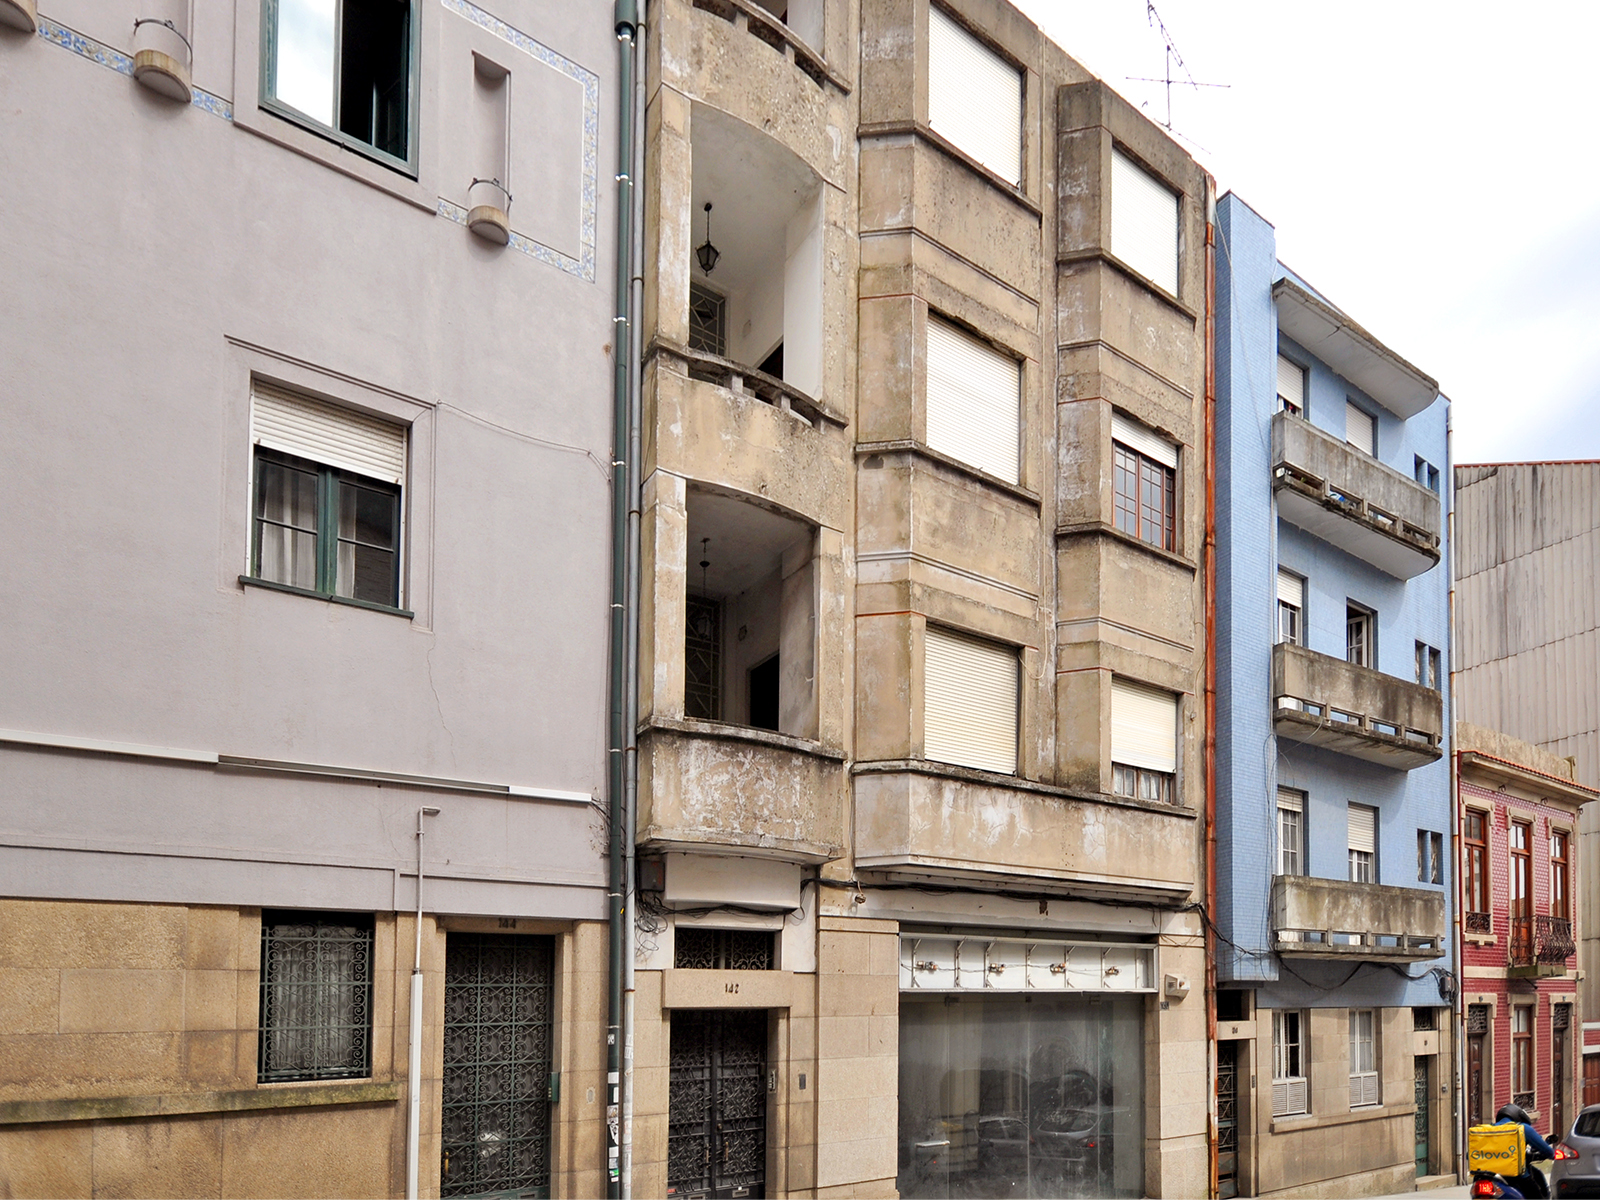 Building to Campo 24 August – Porto